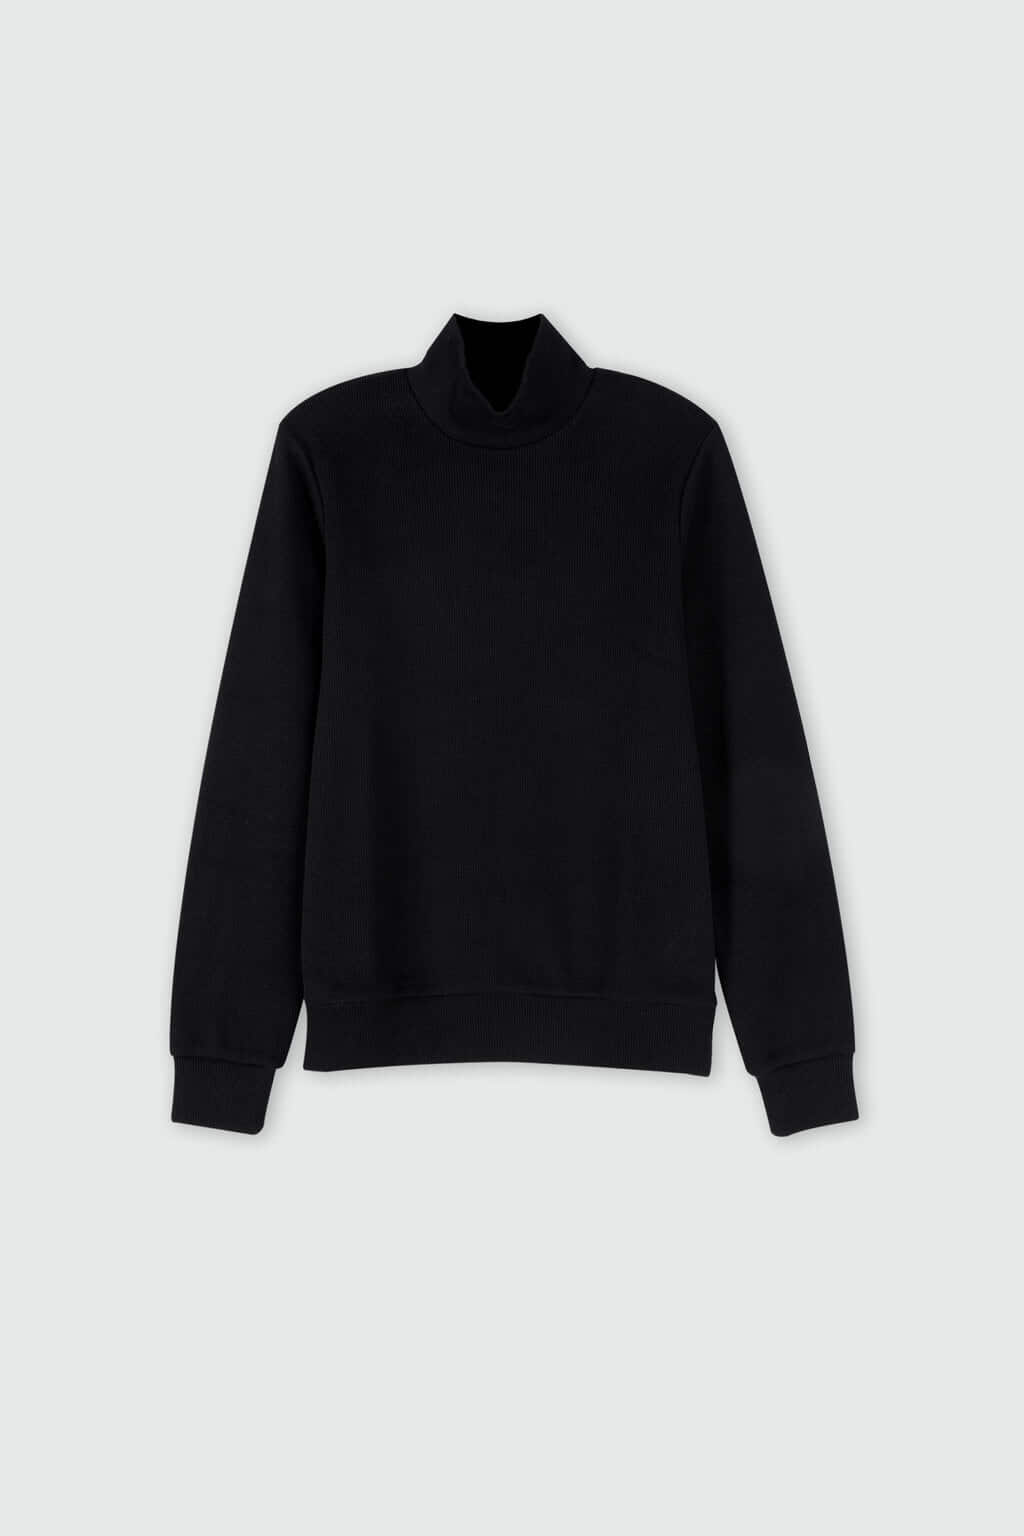 Sweatshirt 2667 Black 11